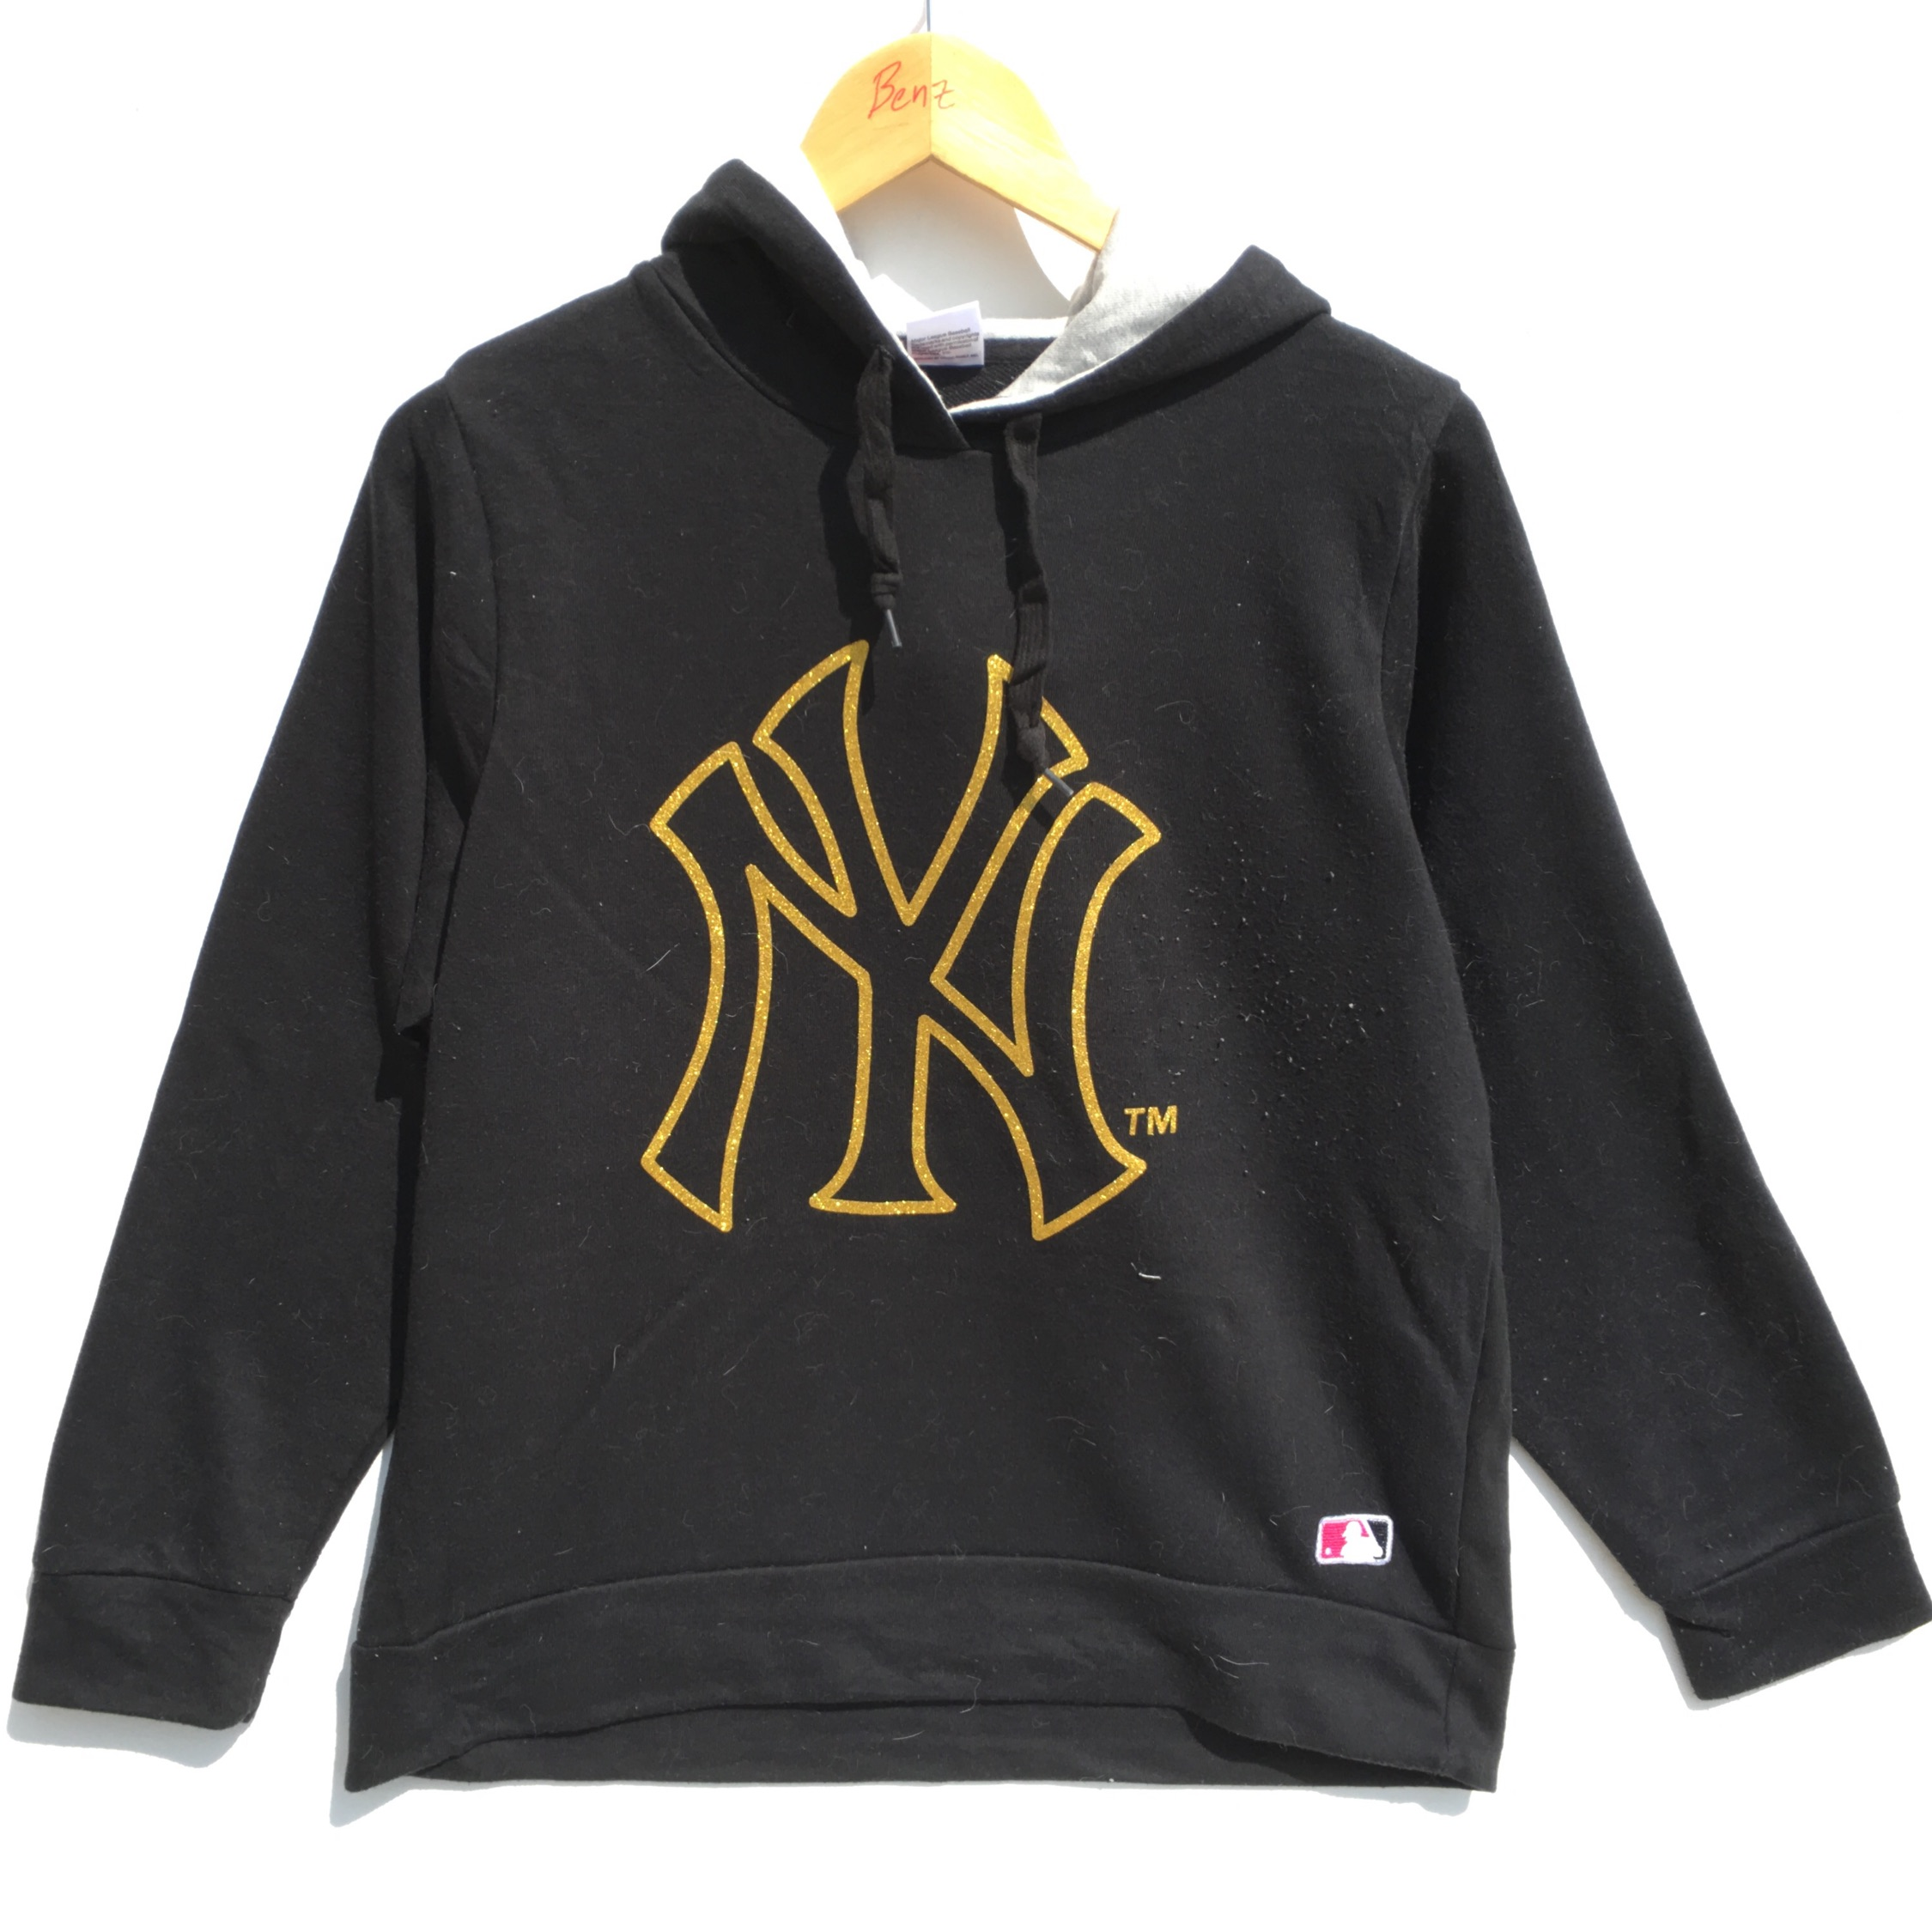 competitive price e0c0f 8e90e new york yankees hoodie